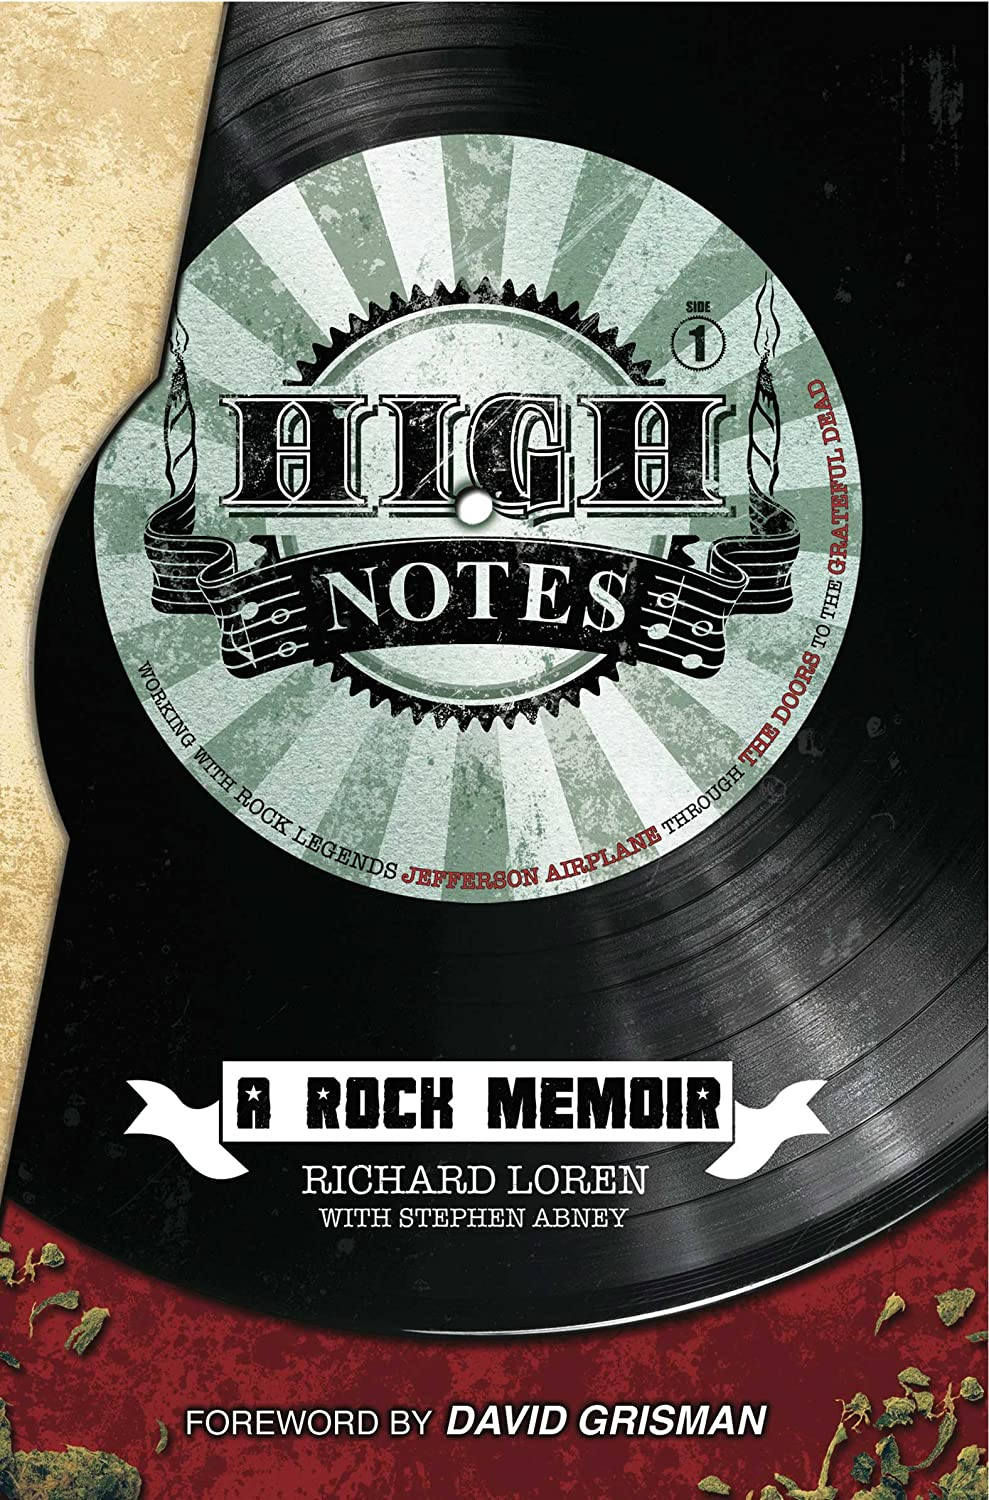 Richard Loren High Notes: A Rock Memoir